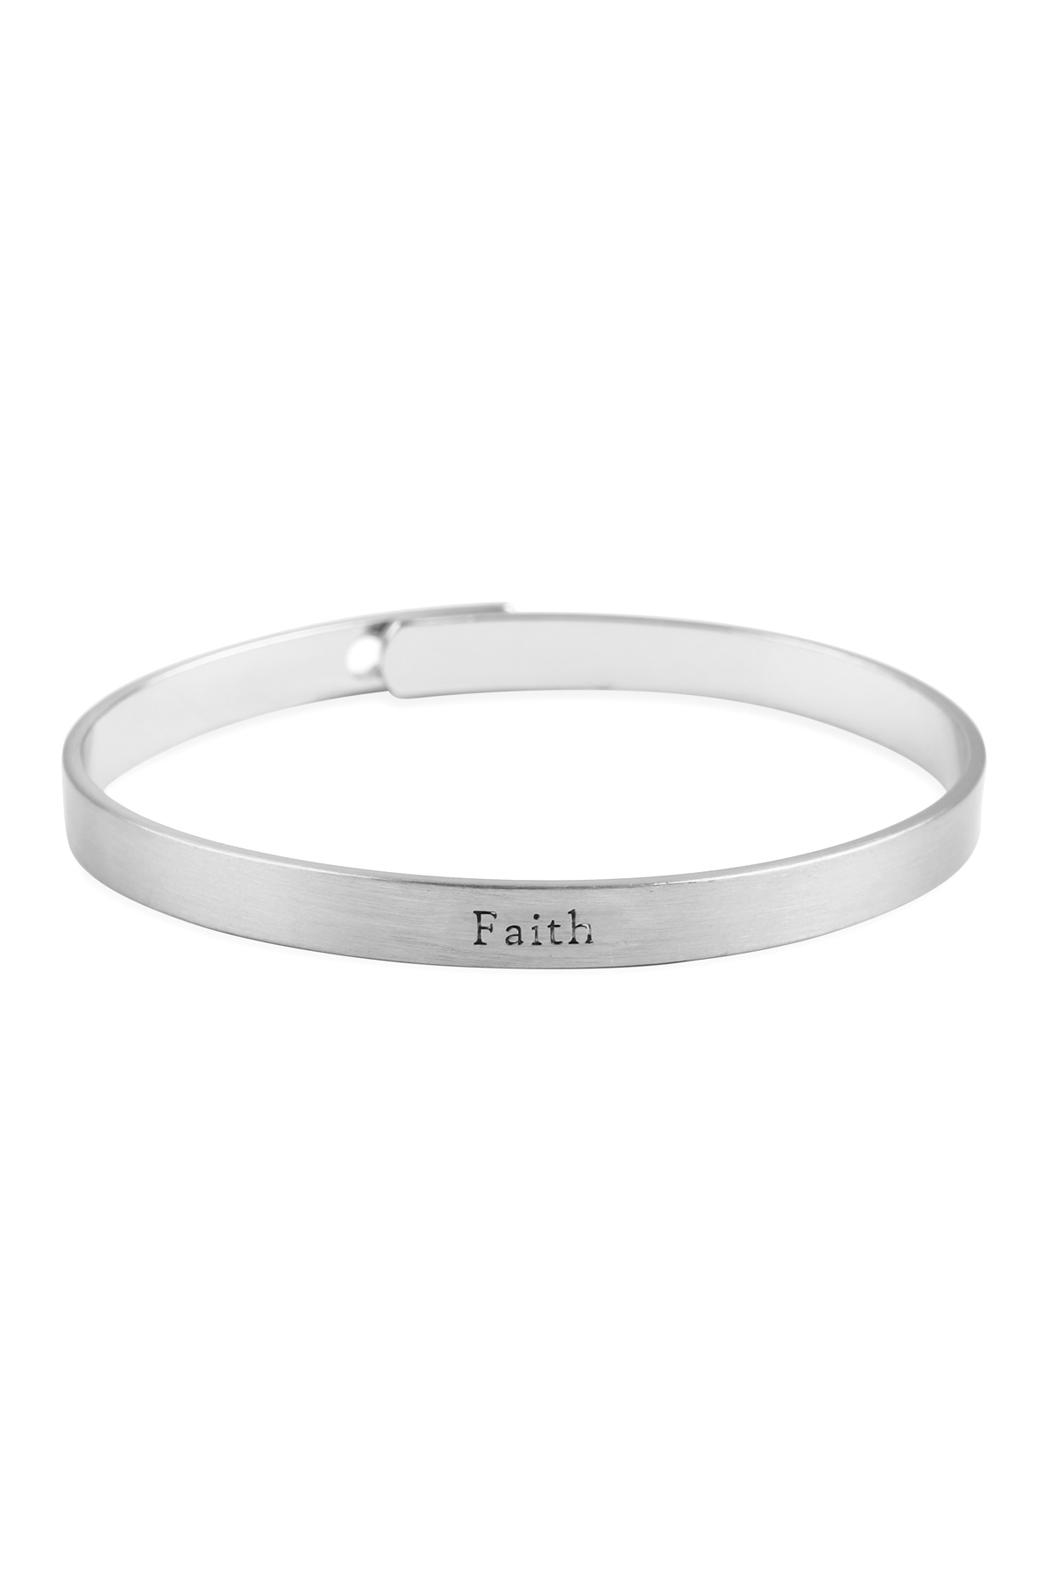 Riah Fashion Faith Inspiration Metal-Cuff-Bracelet - Front Cropped Image